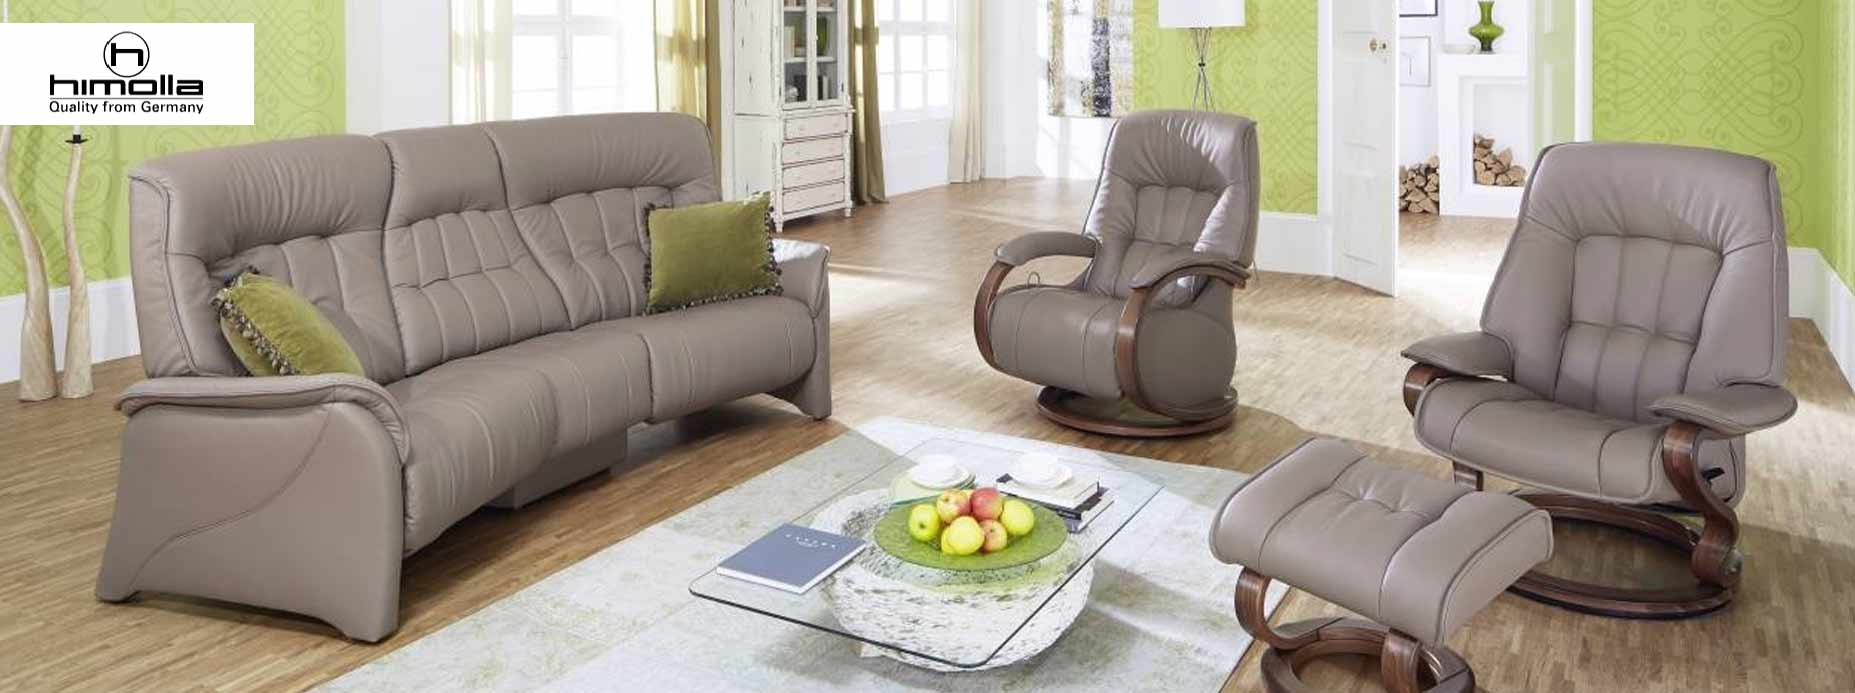 Himolla Leather Recliner & Sofas